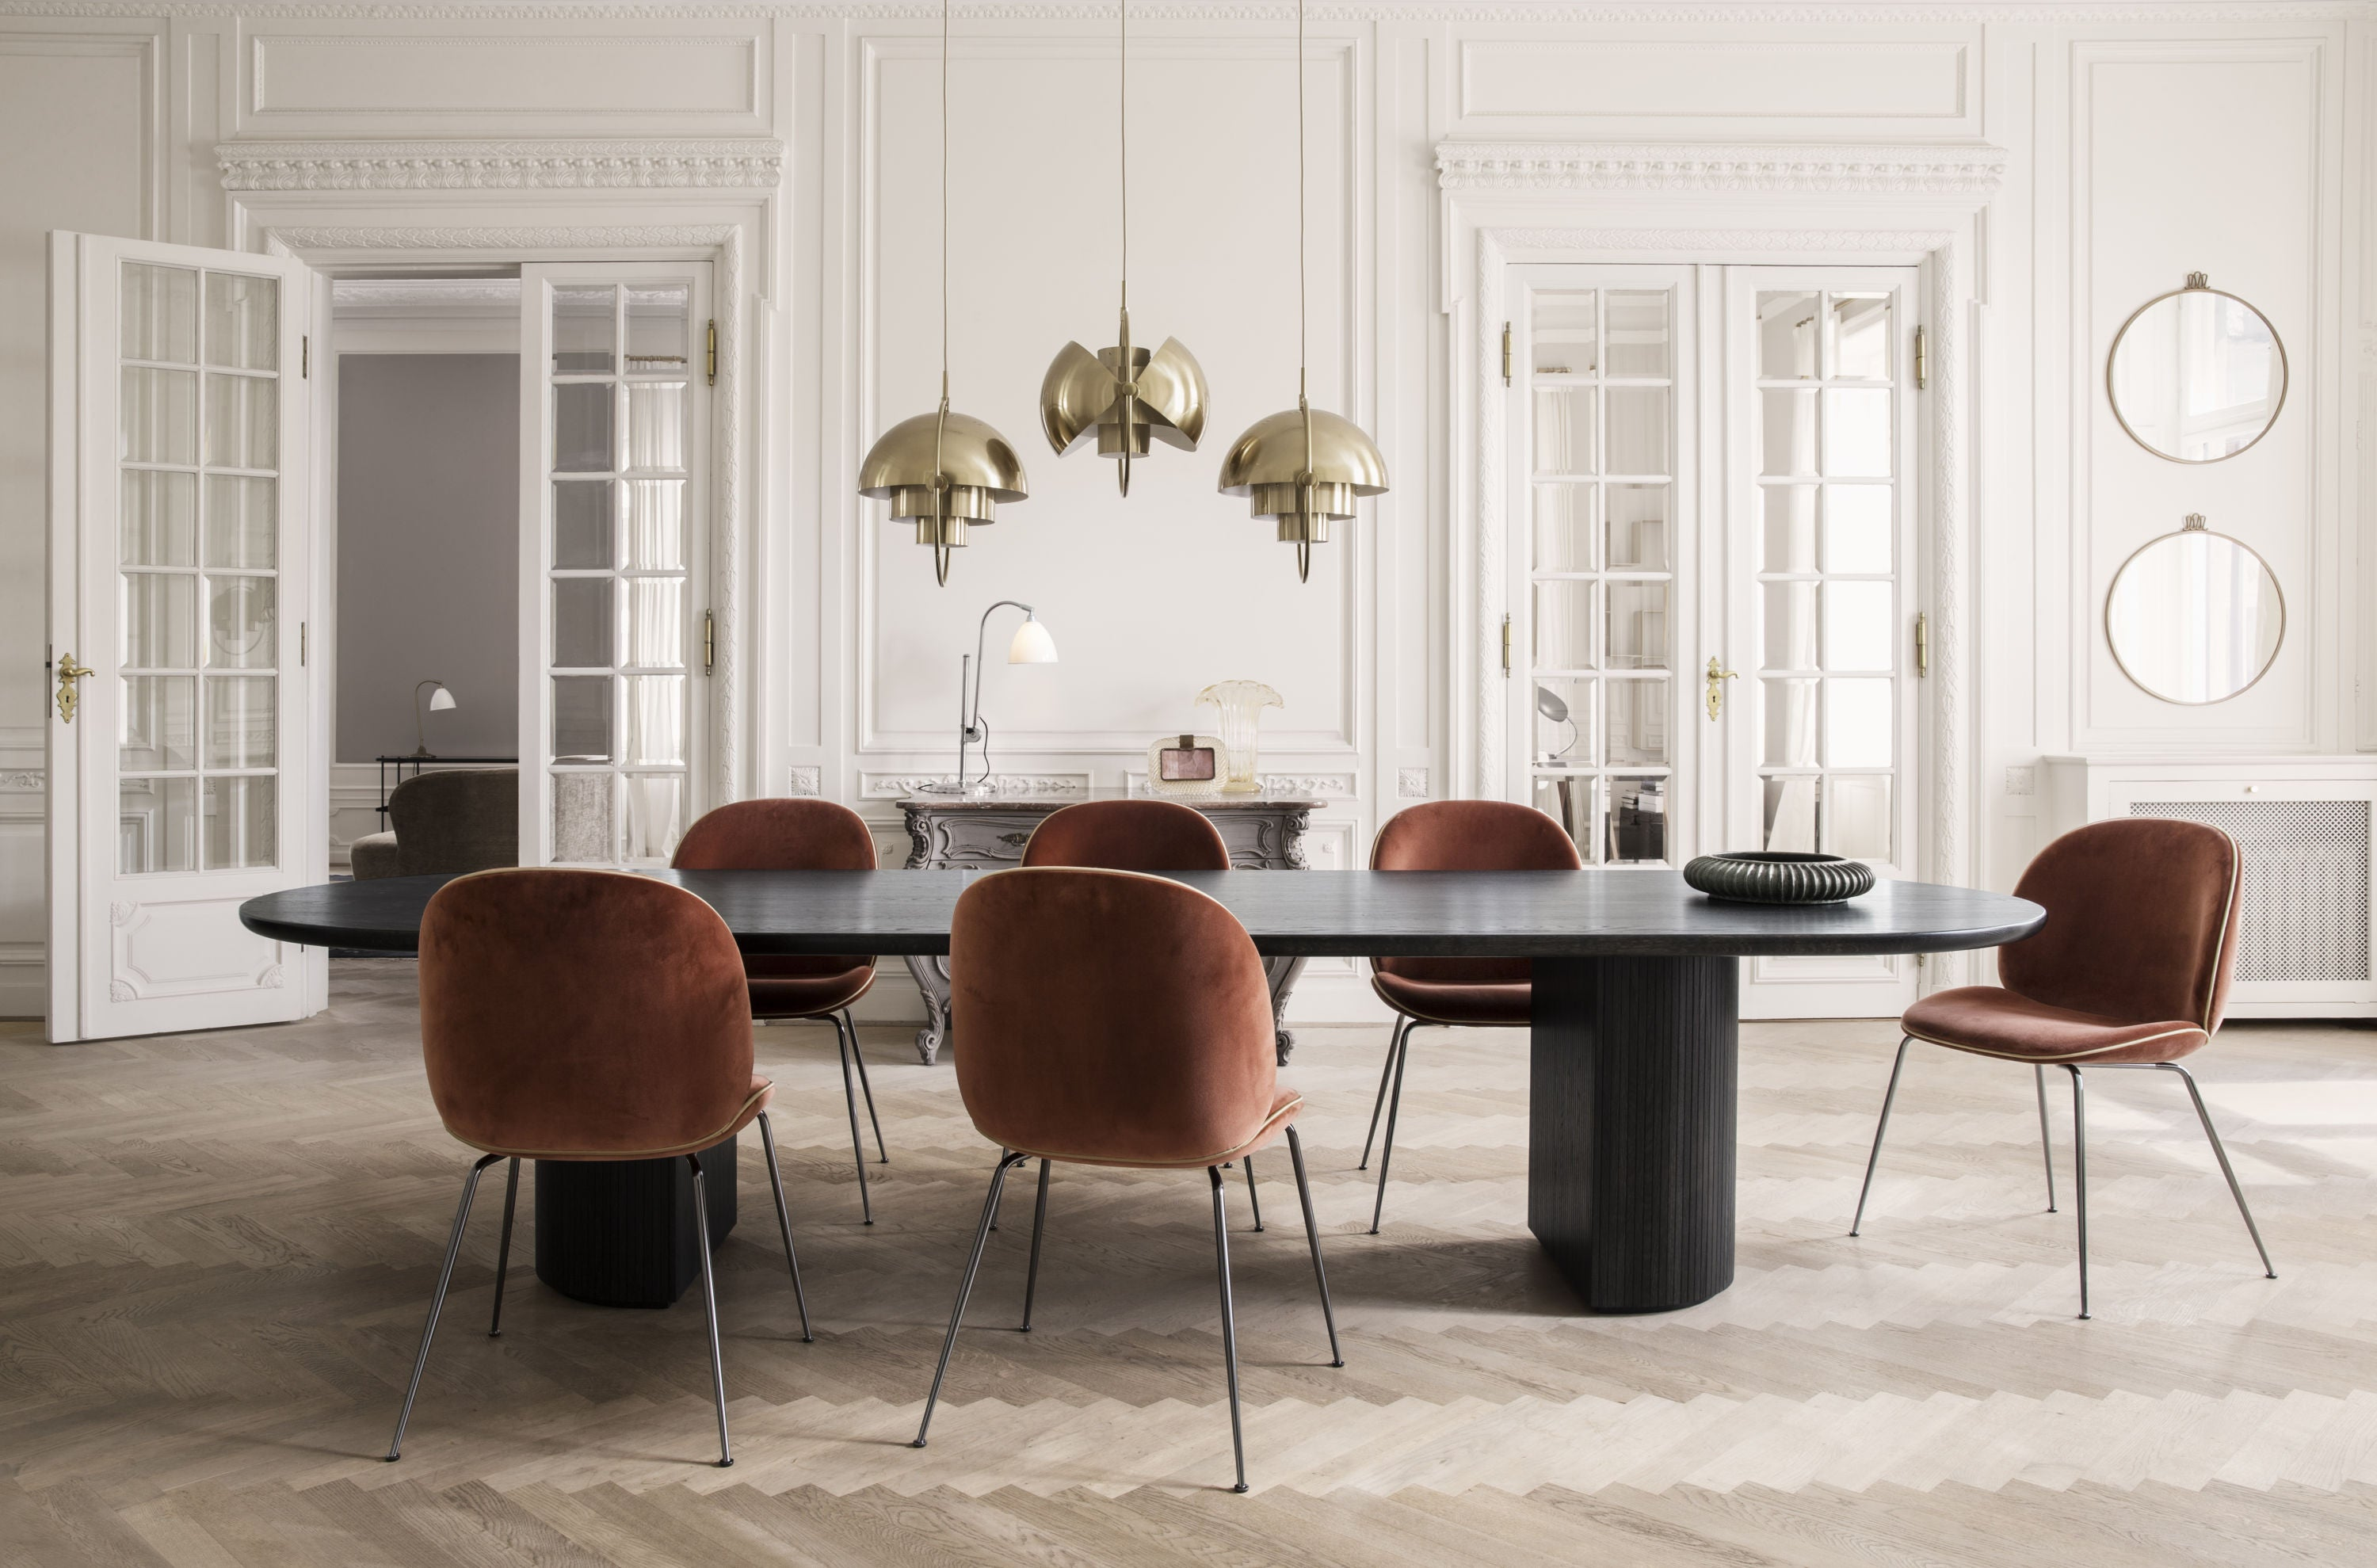 Moon Dining Table - Elliptical, 300x105 - Brown/Black Stained Veneer Lacquered fra GUBI